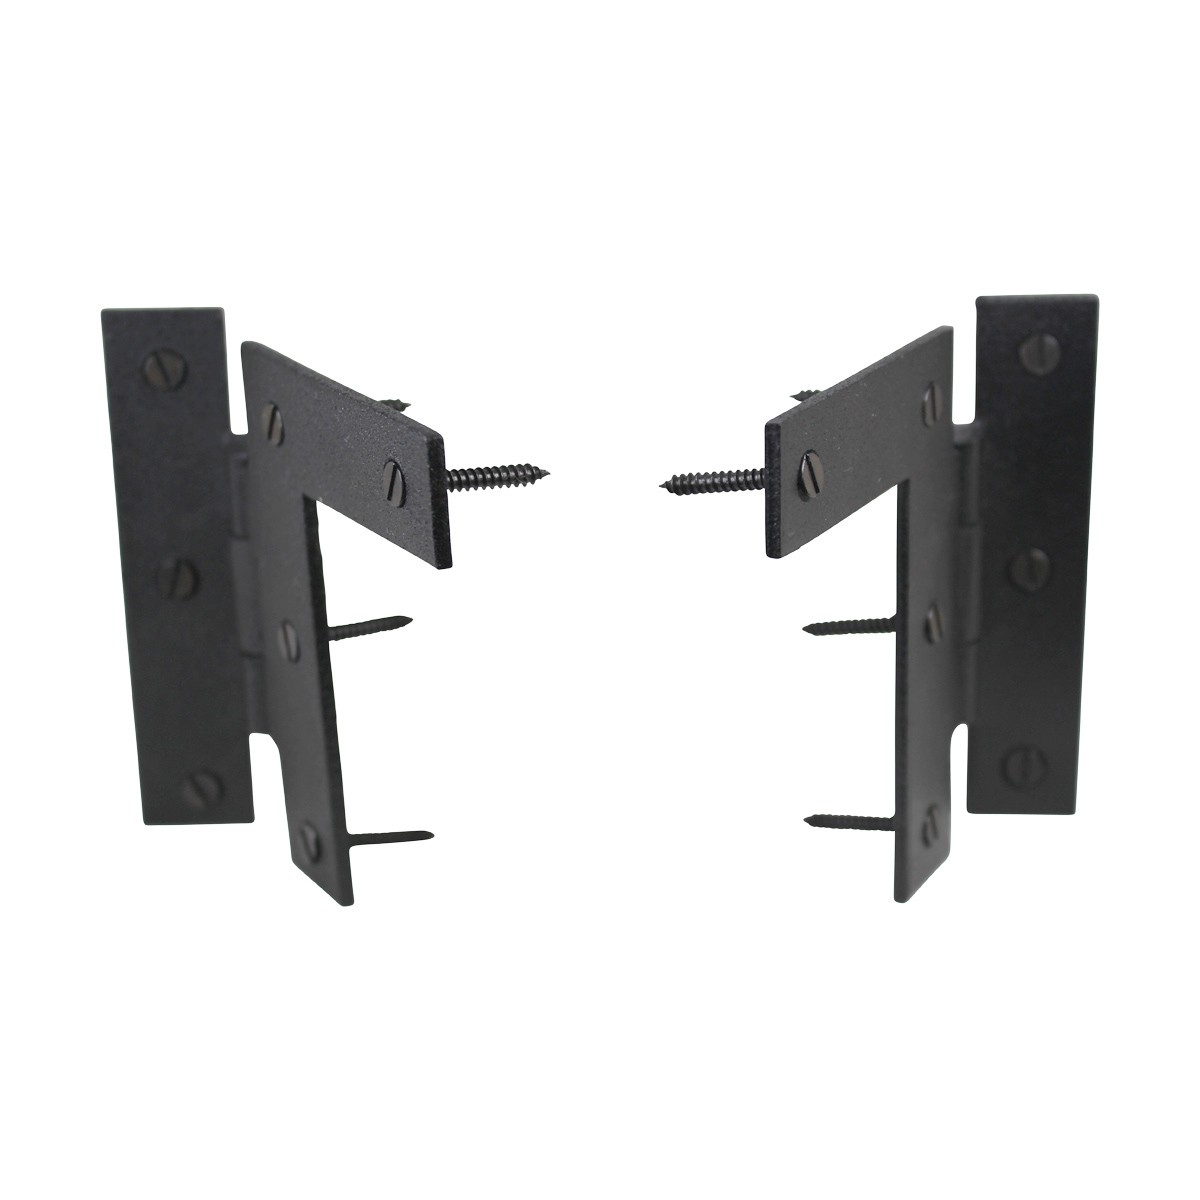 Pair Left and Right HL Wrought Iron Cabinet Hinge 3.5 H, 38 Offset Pack of 5 Door Hinges Door Hinge Solid Brass Hinge